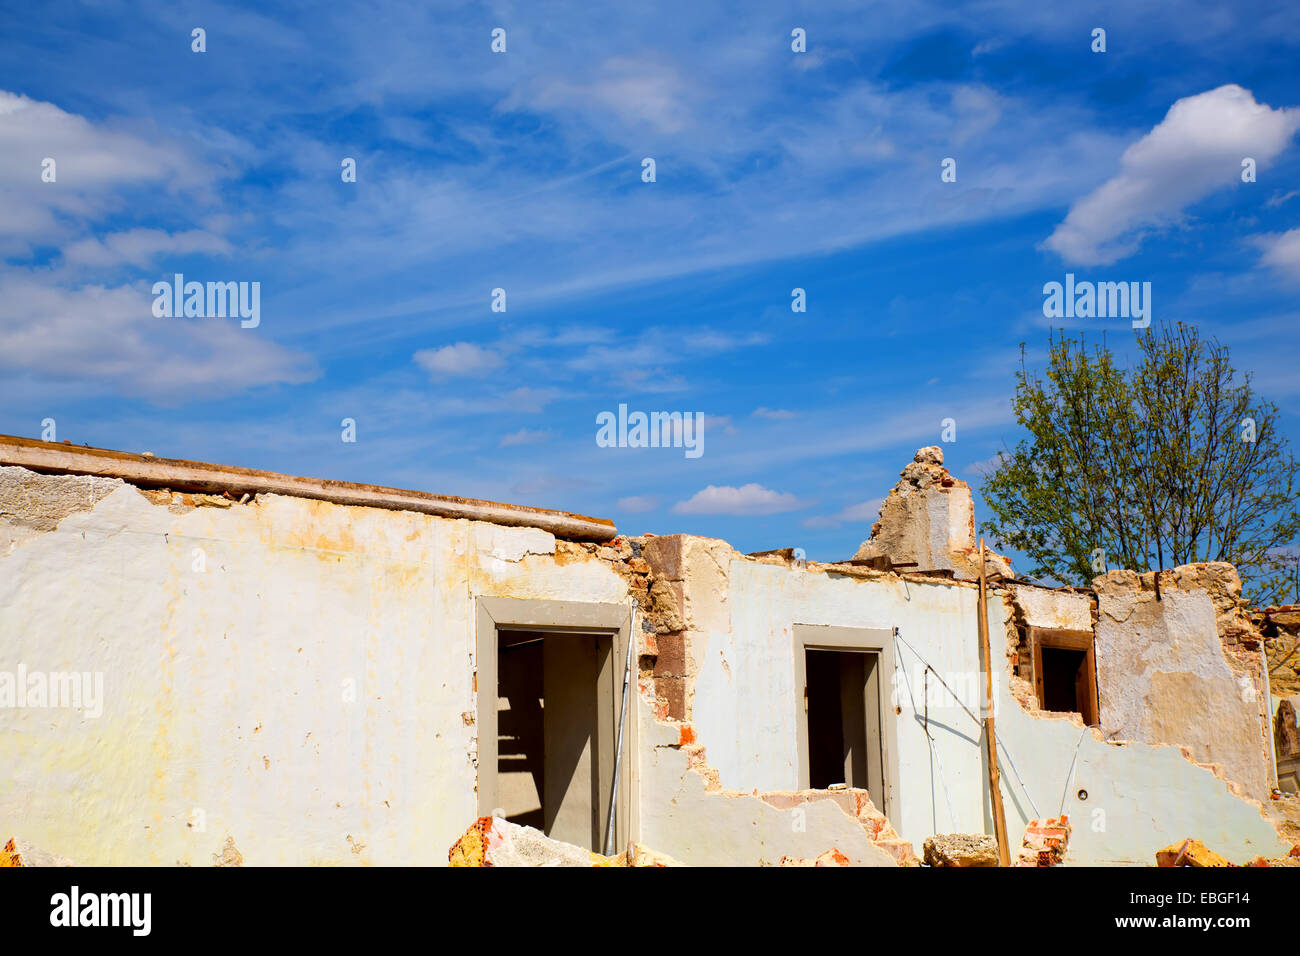 A Ruin of a demolished house. - Stock Image